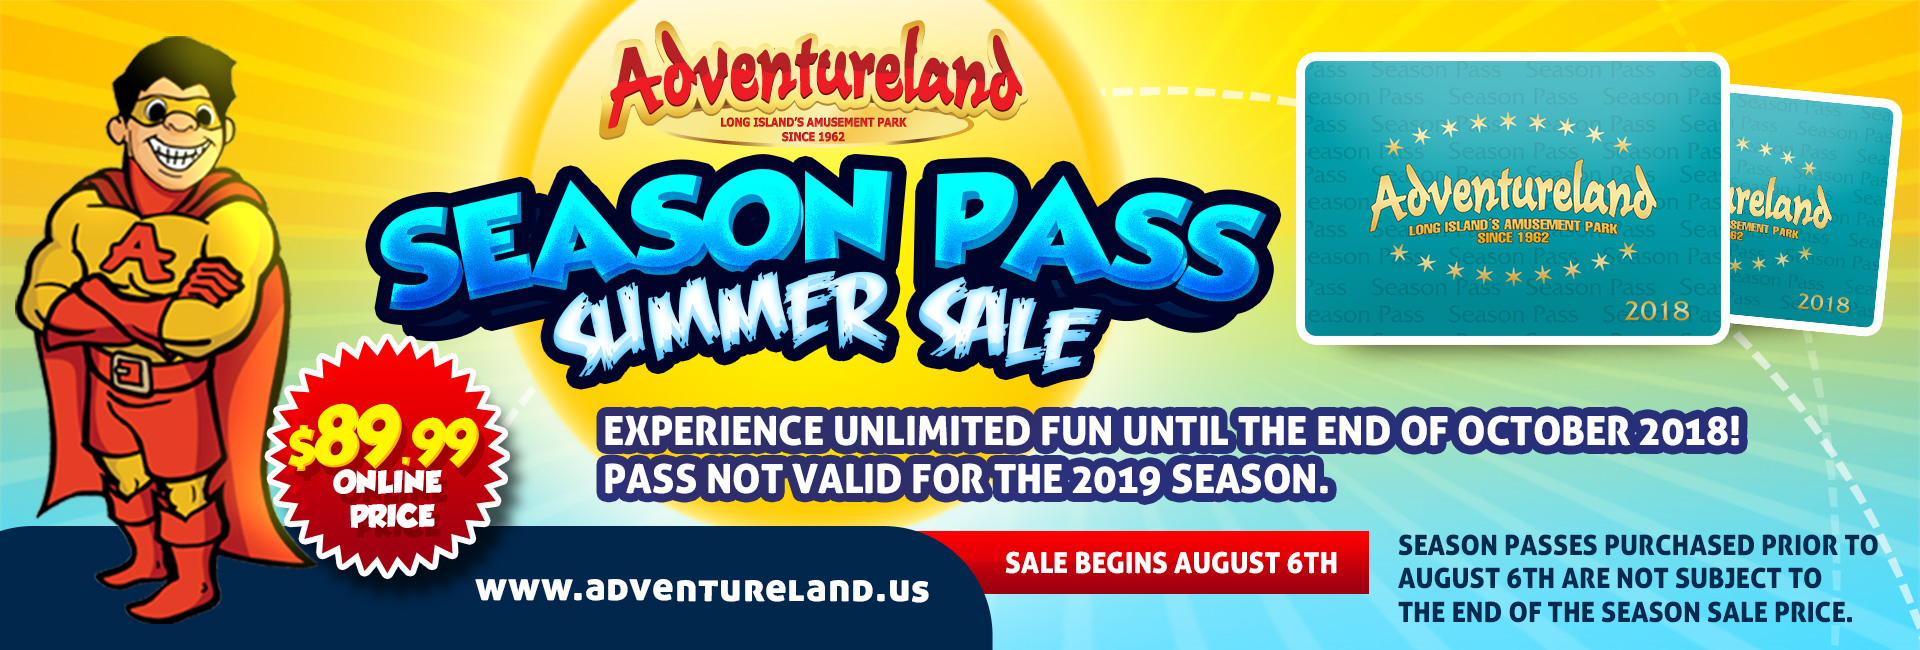 season-pass-summer-sale-2018-homepage